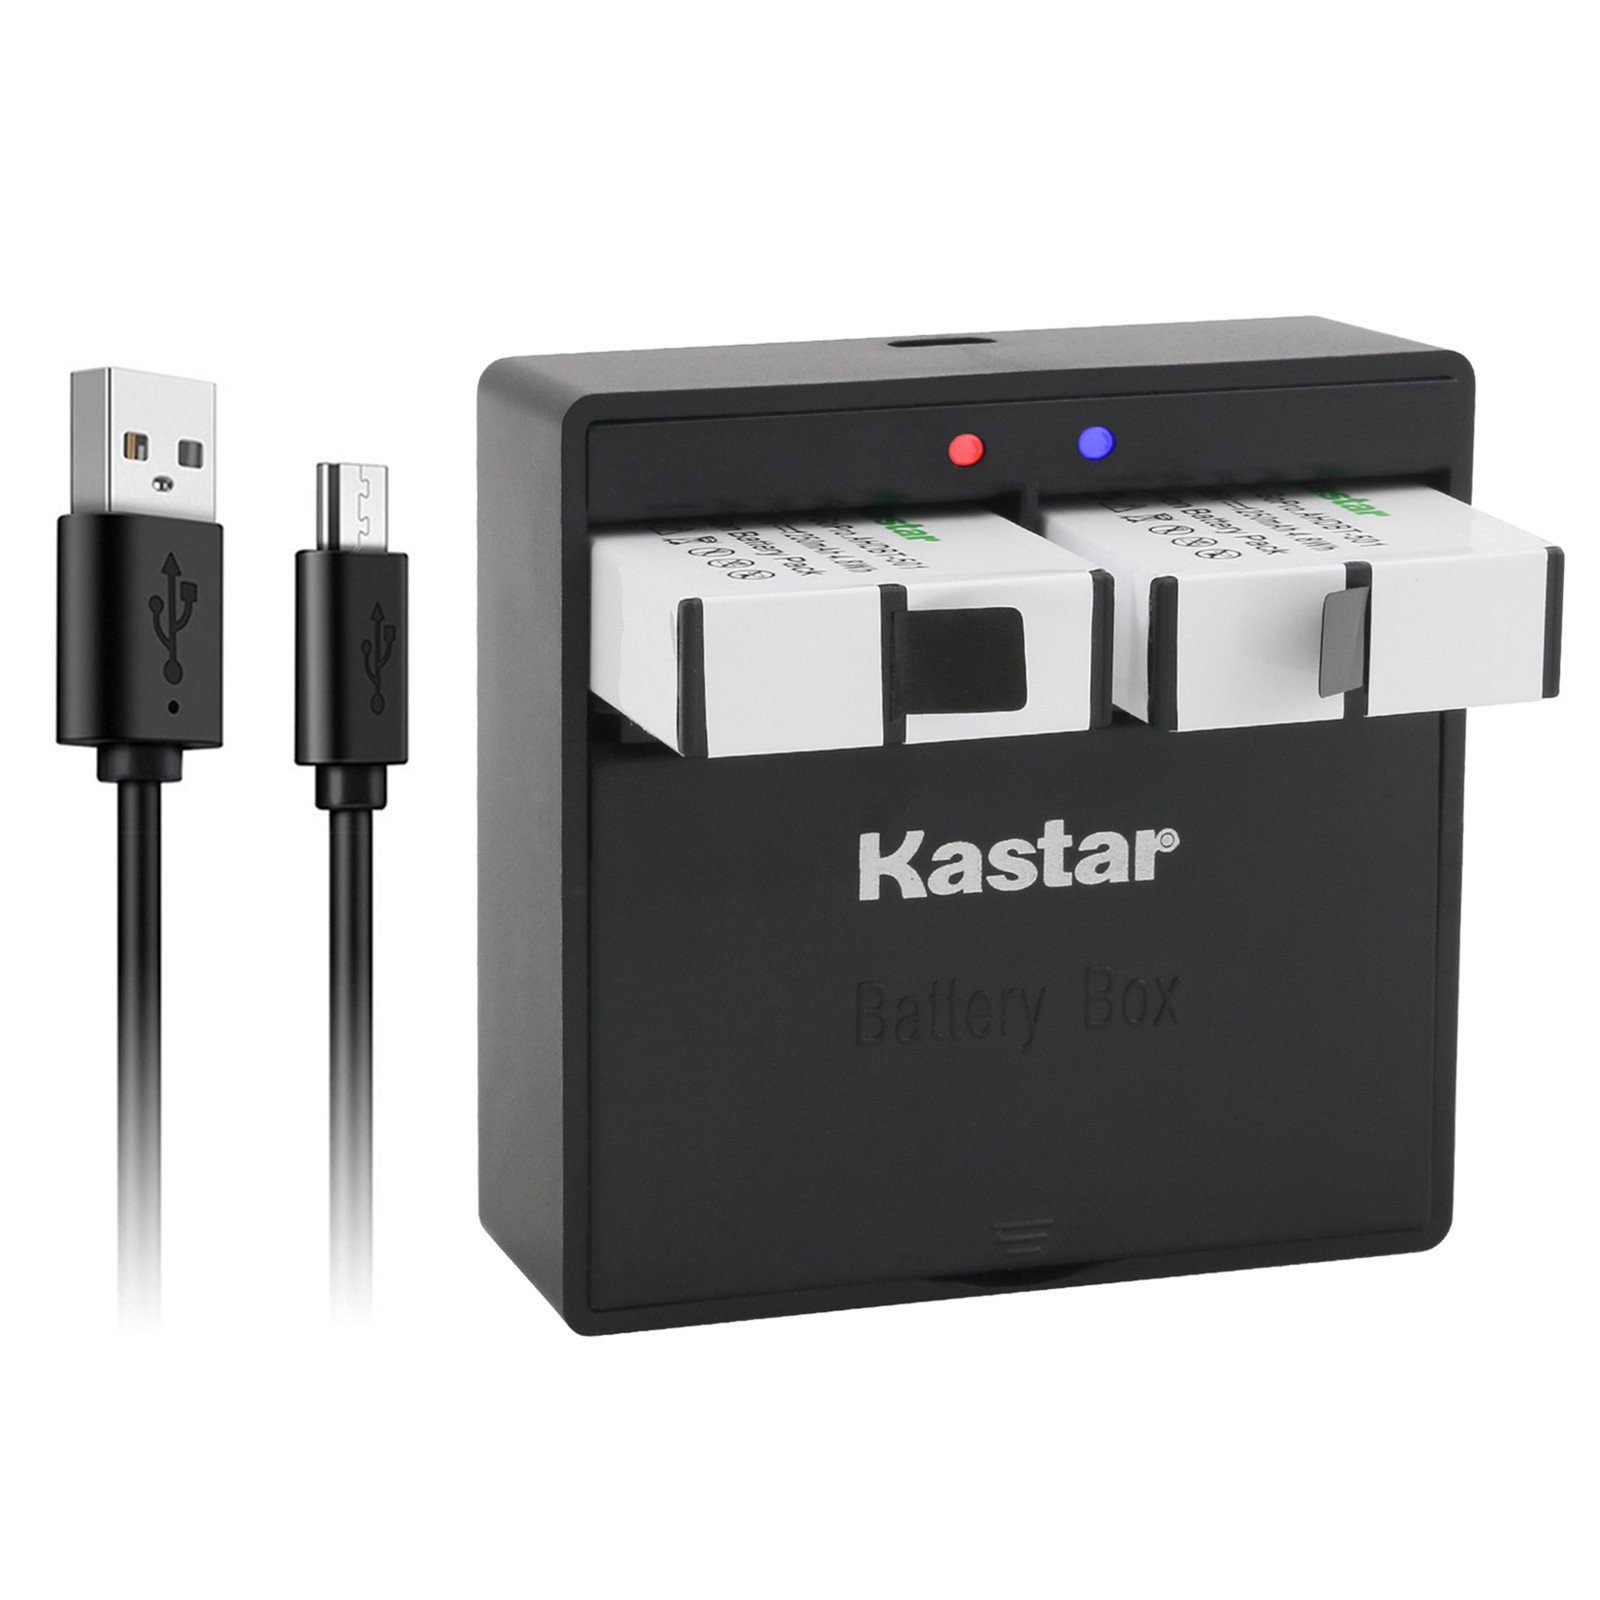 Kastar Battery (2-Pack) & Dual USB Charger for GoPro HERO6, Hero 6 Black, Gopro6, AABAT-00, 601-10197-000 and GoPro AHDBT-601, AHBBP-601 Sport Camera